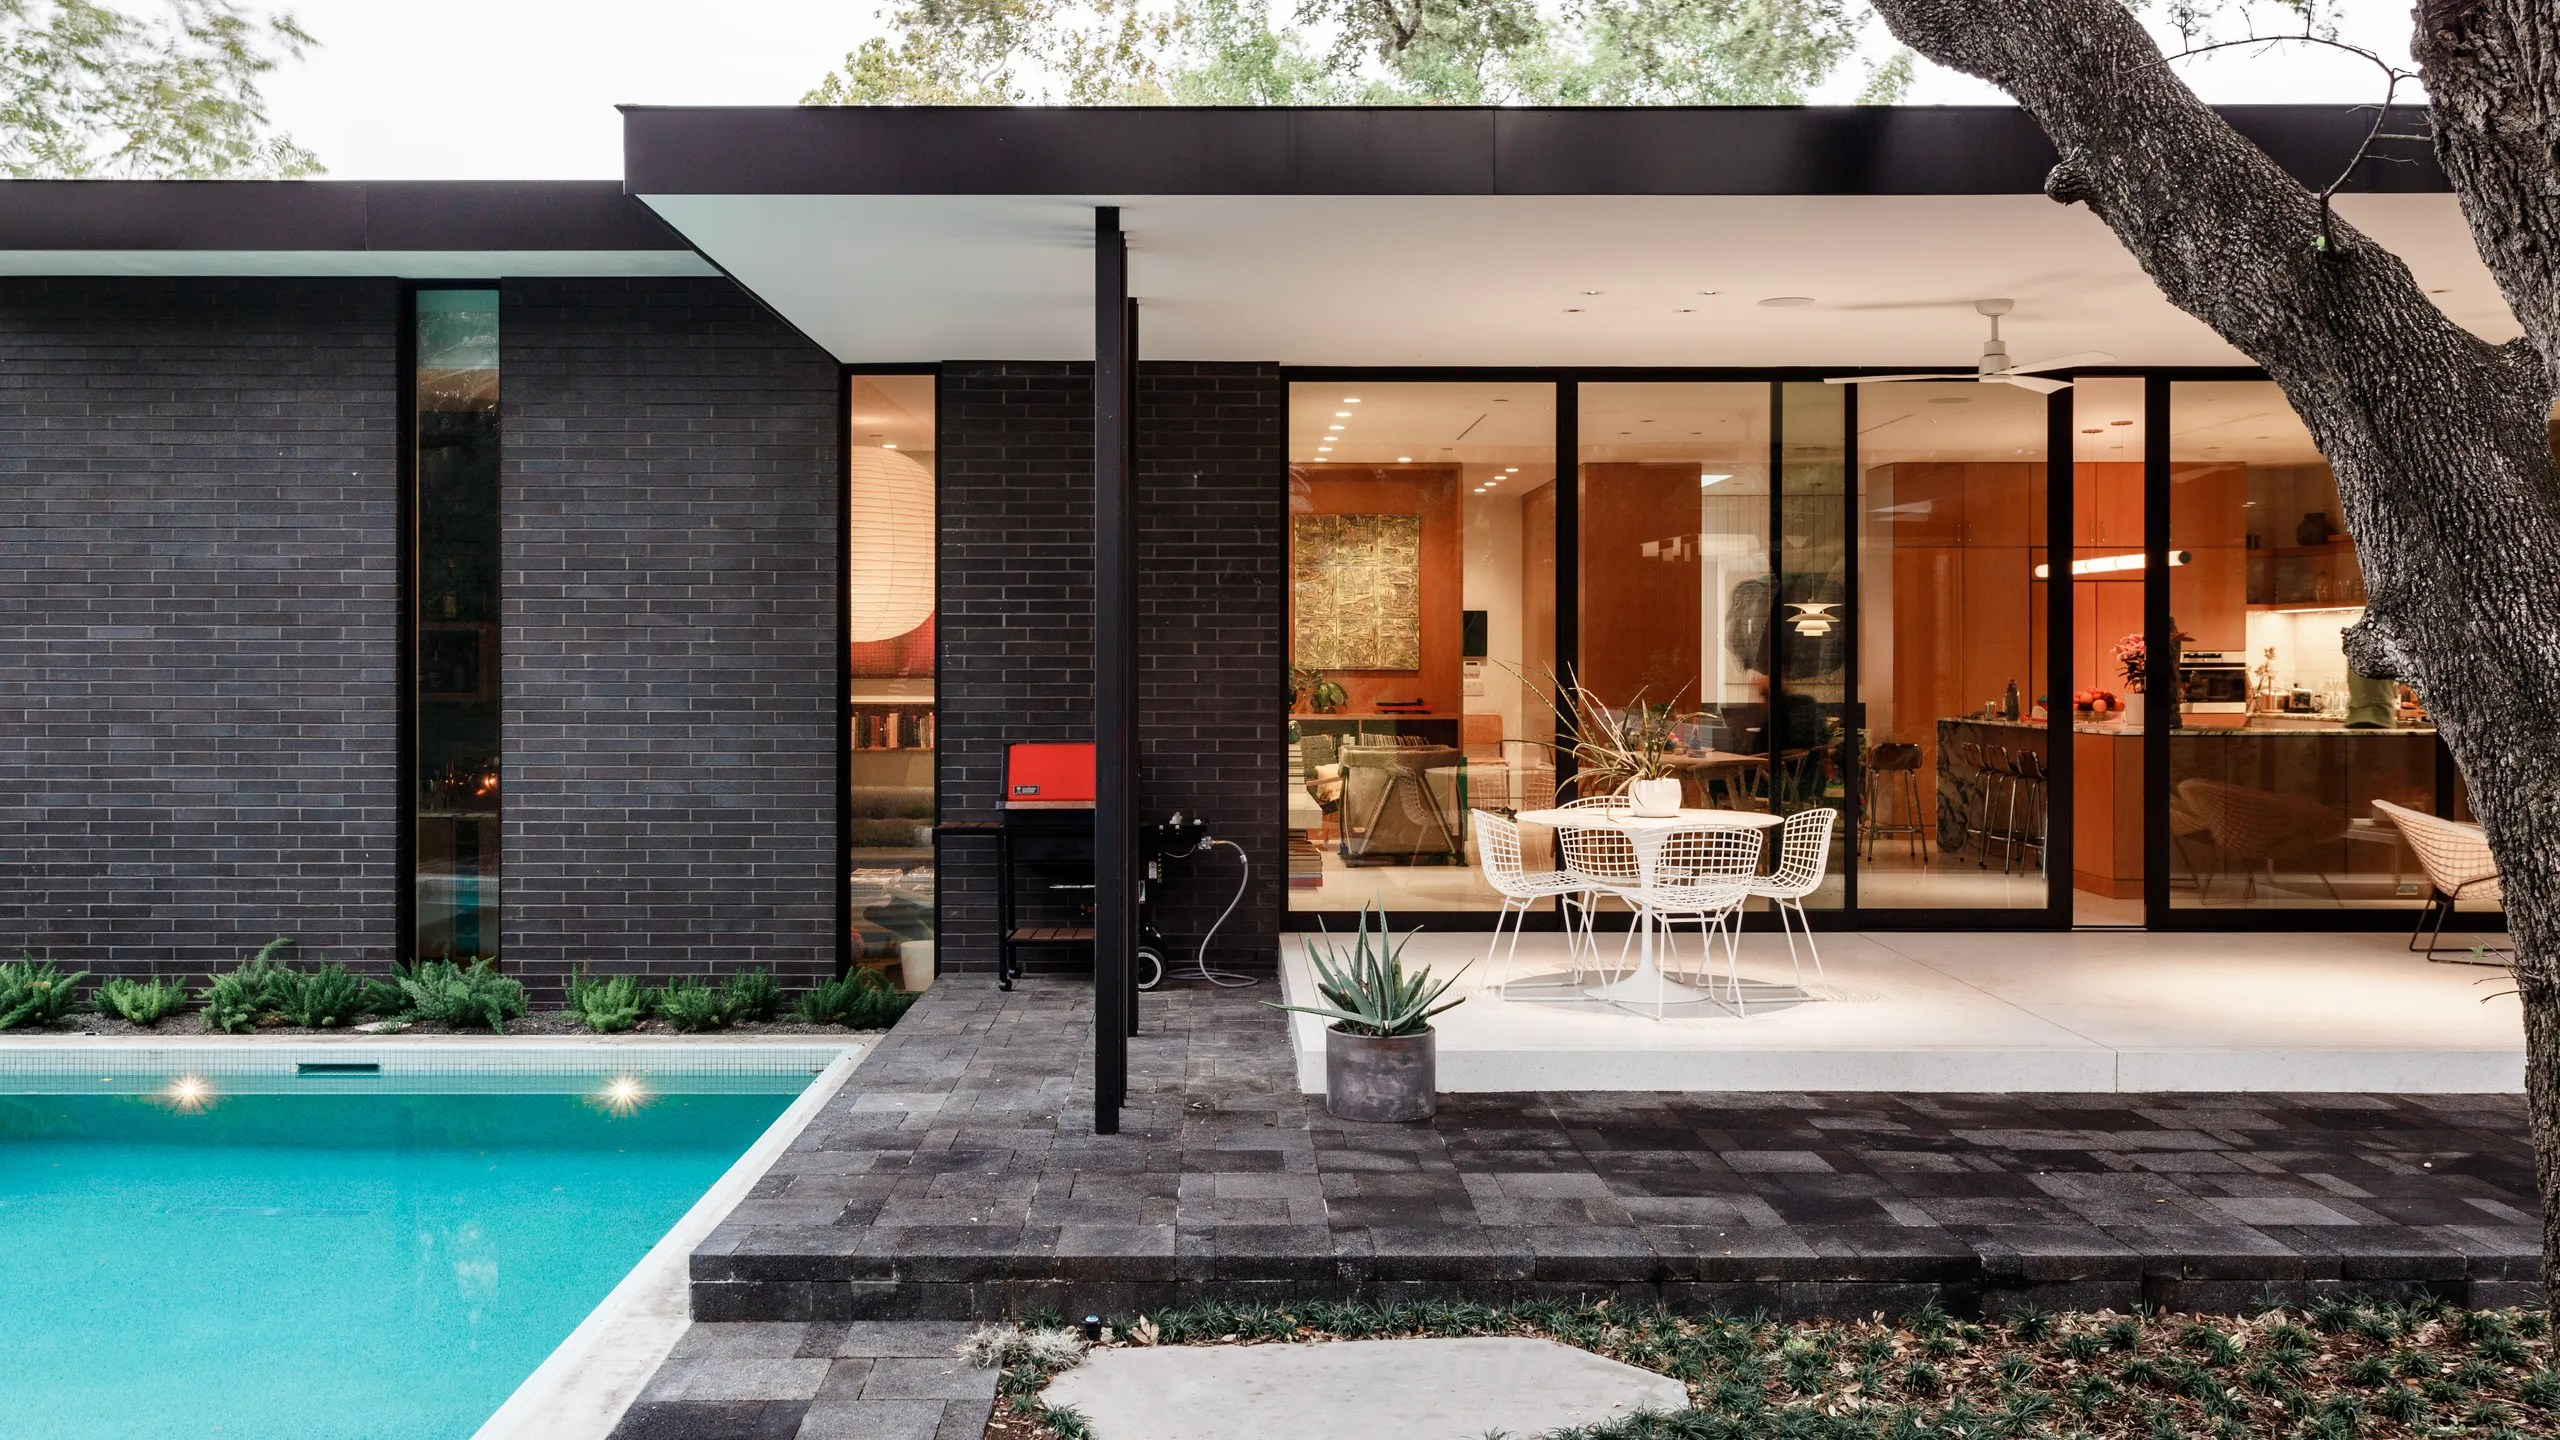 a pair of l.a. natives create their own midcentury idyll in